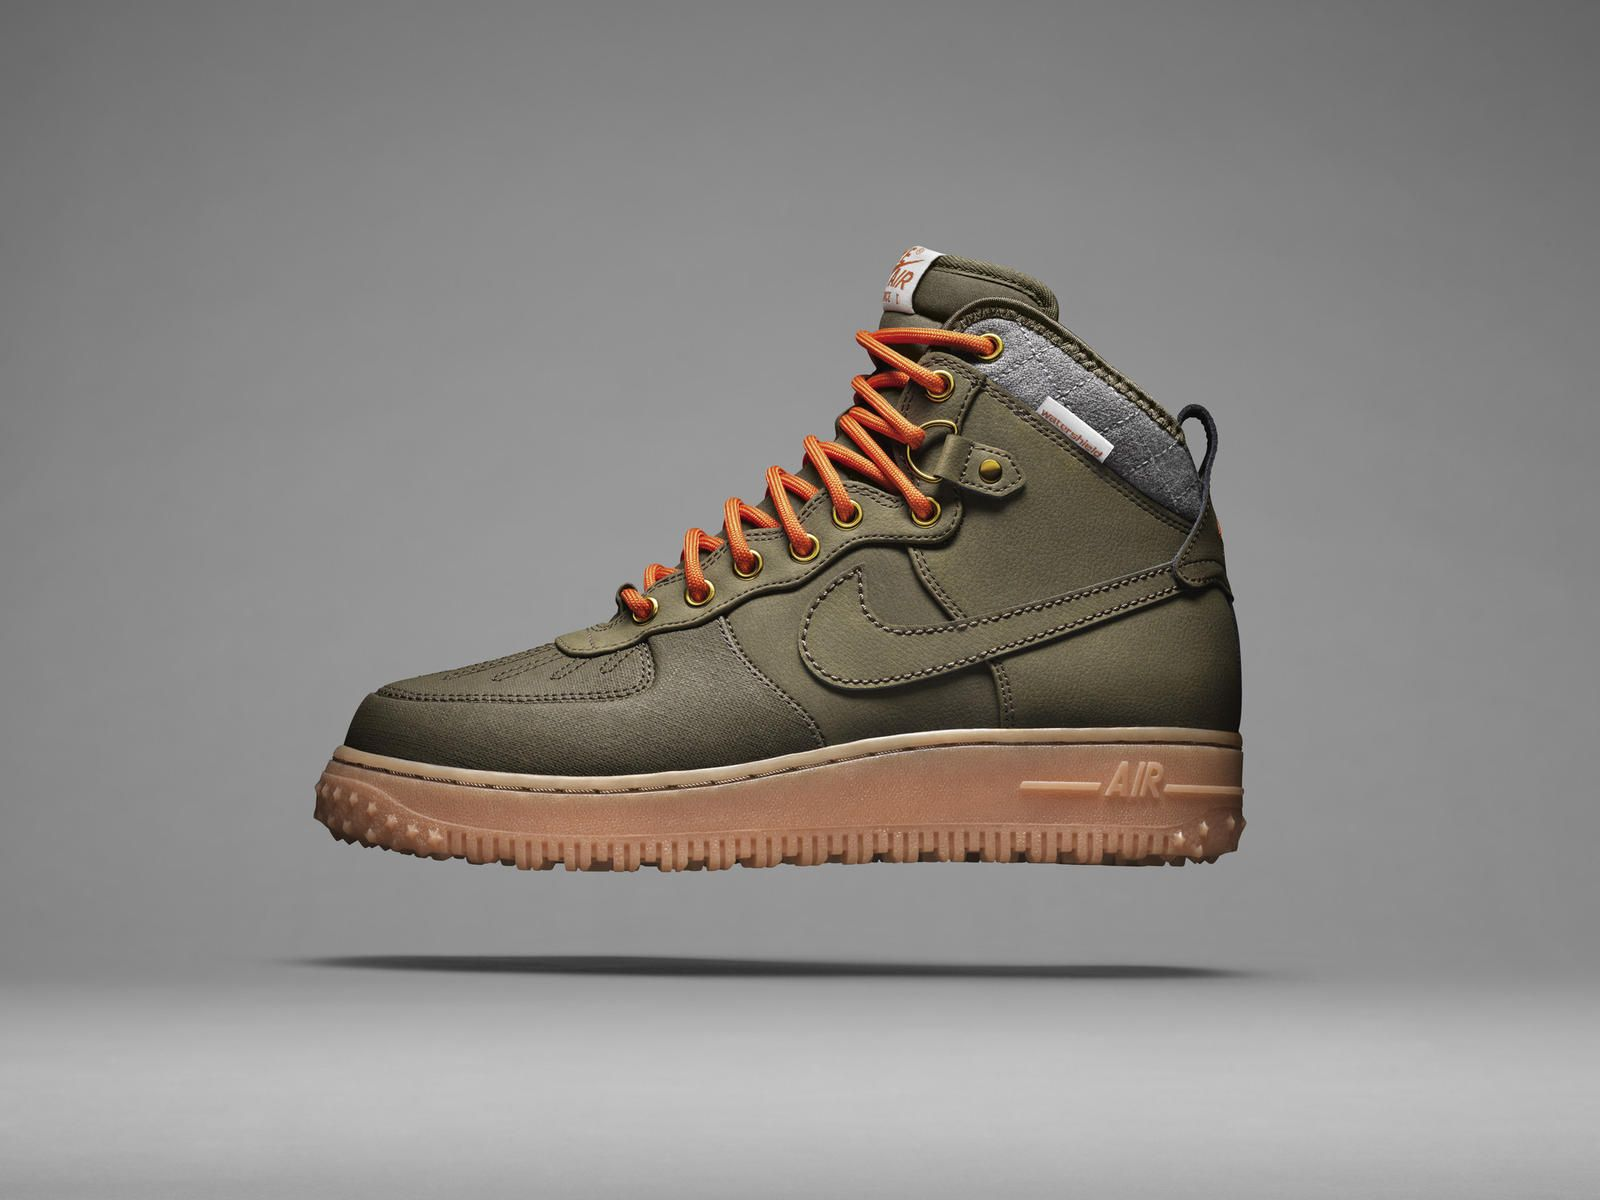 nike air force 1 anthracite/wolf grey/black coat